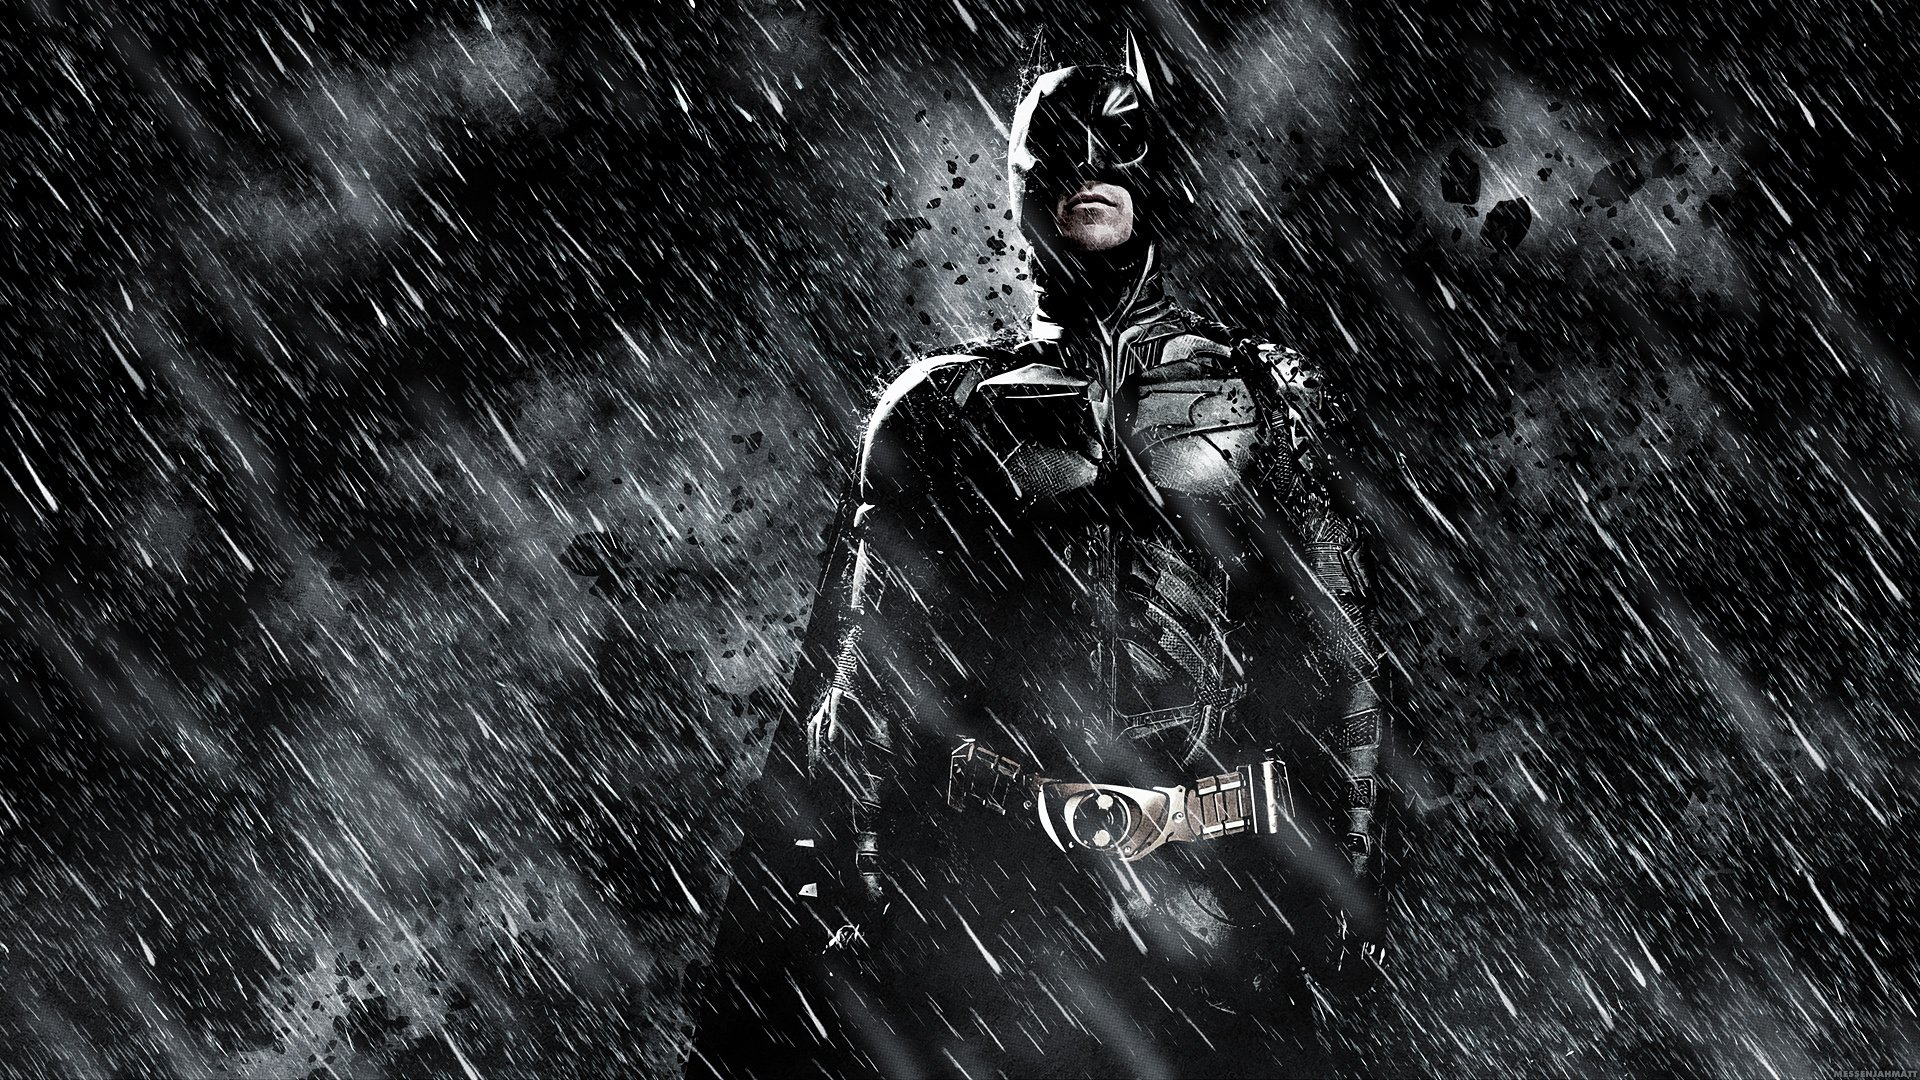 the dark knight wallpaper desktop wallpaper   wwwwallpapers in hdcom 1920x1080